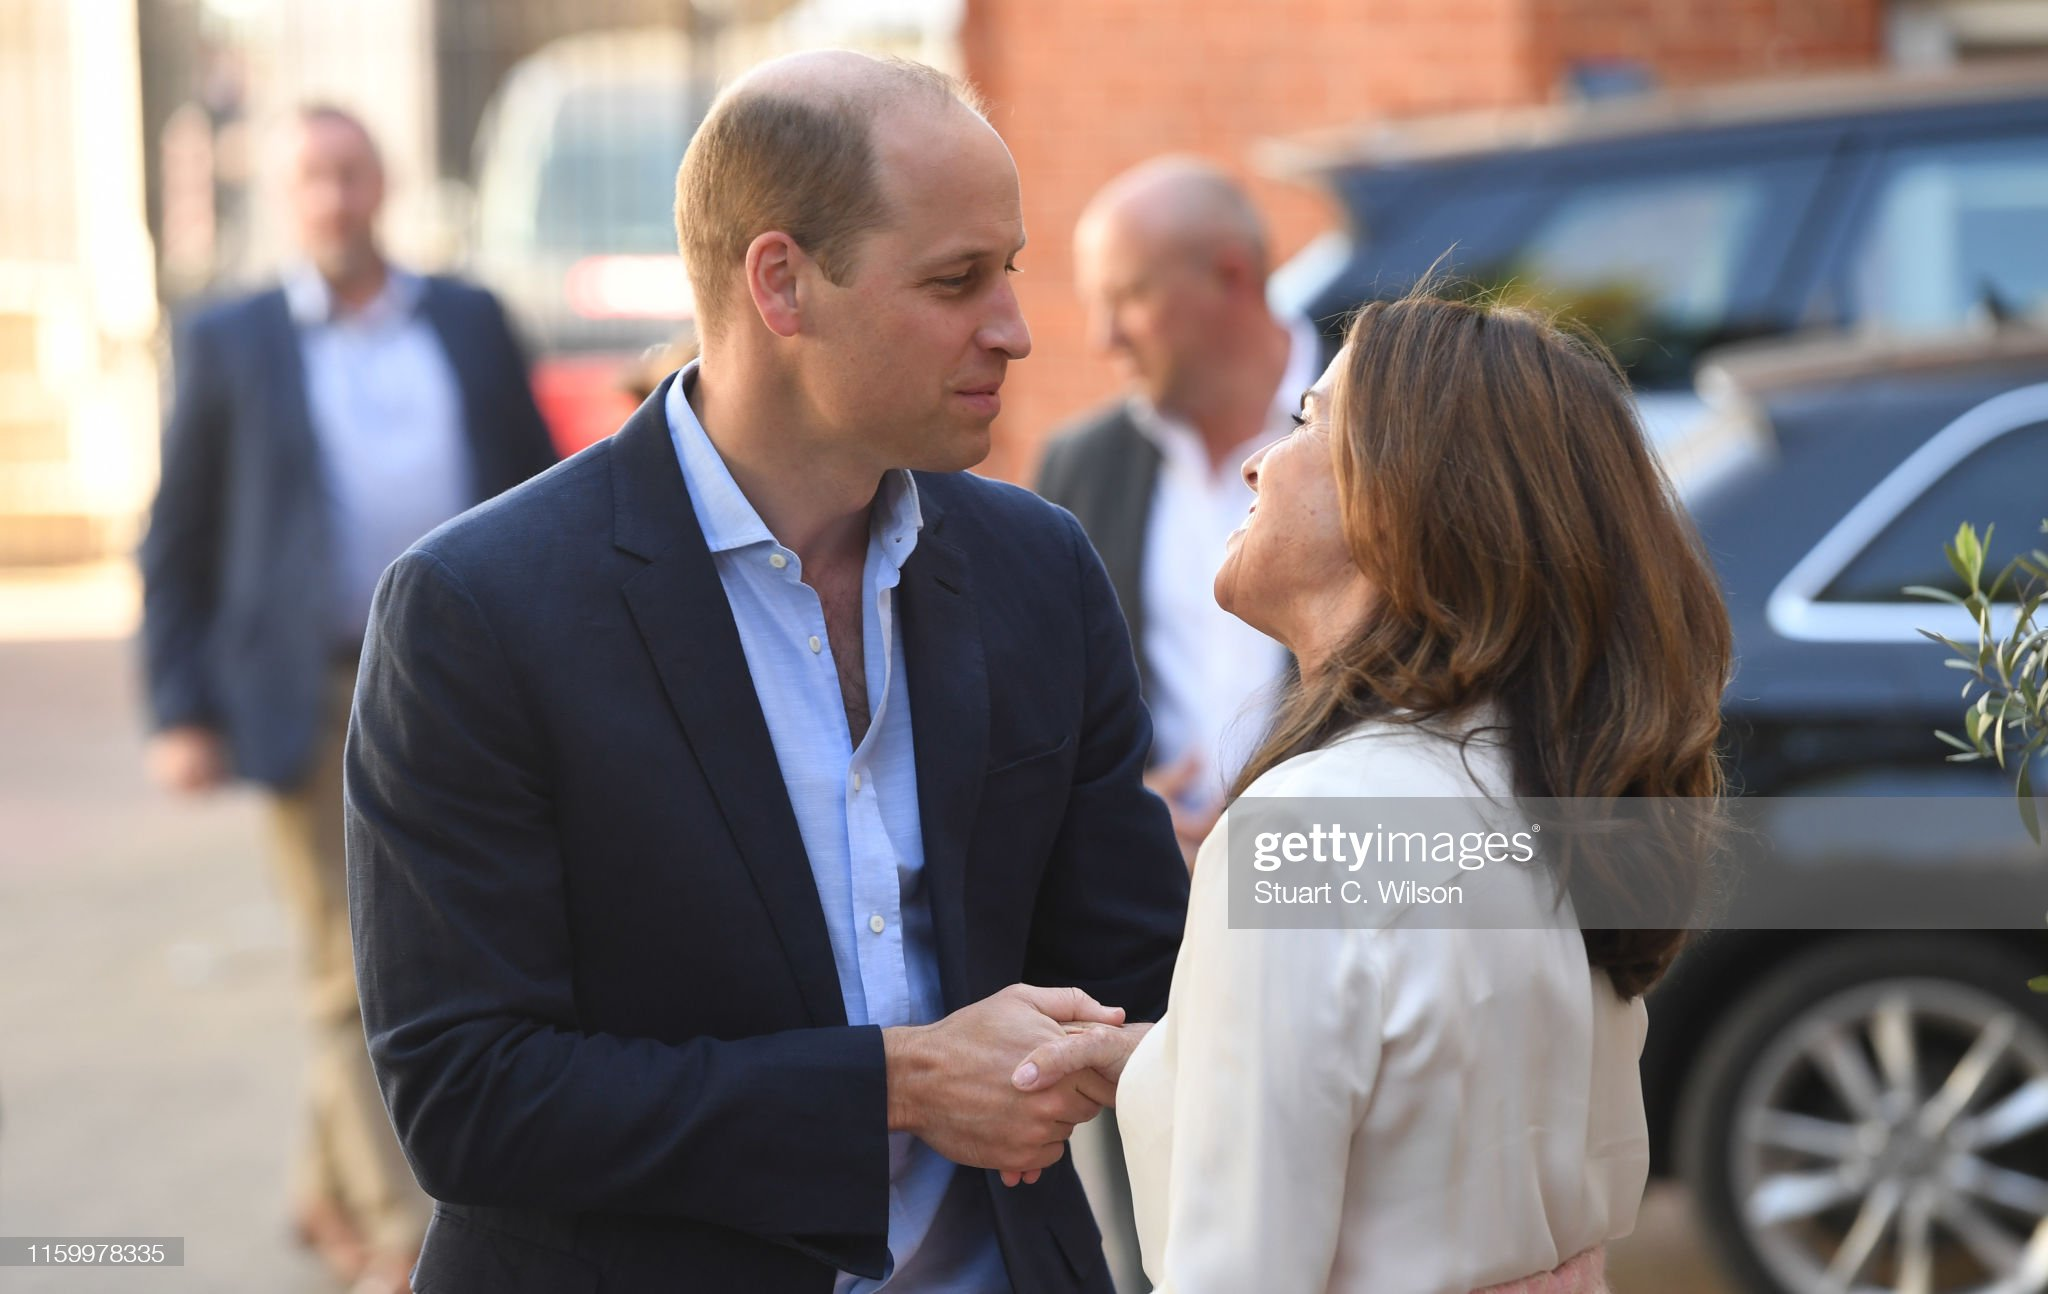 prince-william-duke-of-cambridge-visits-the-royal-marsden-on-july-04-picture-id1159978335